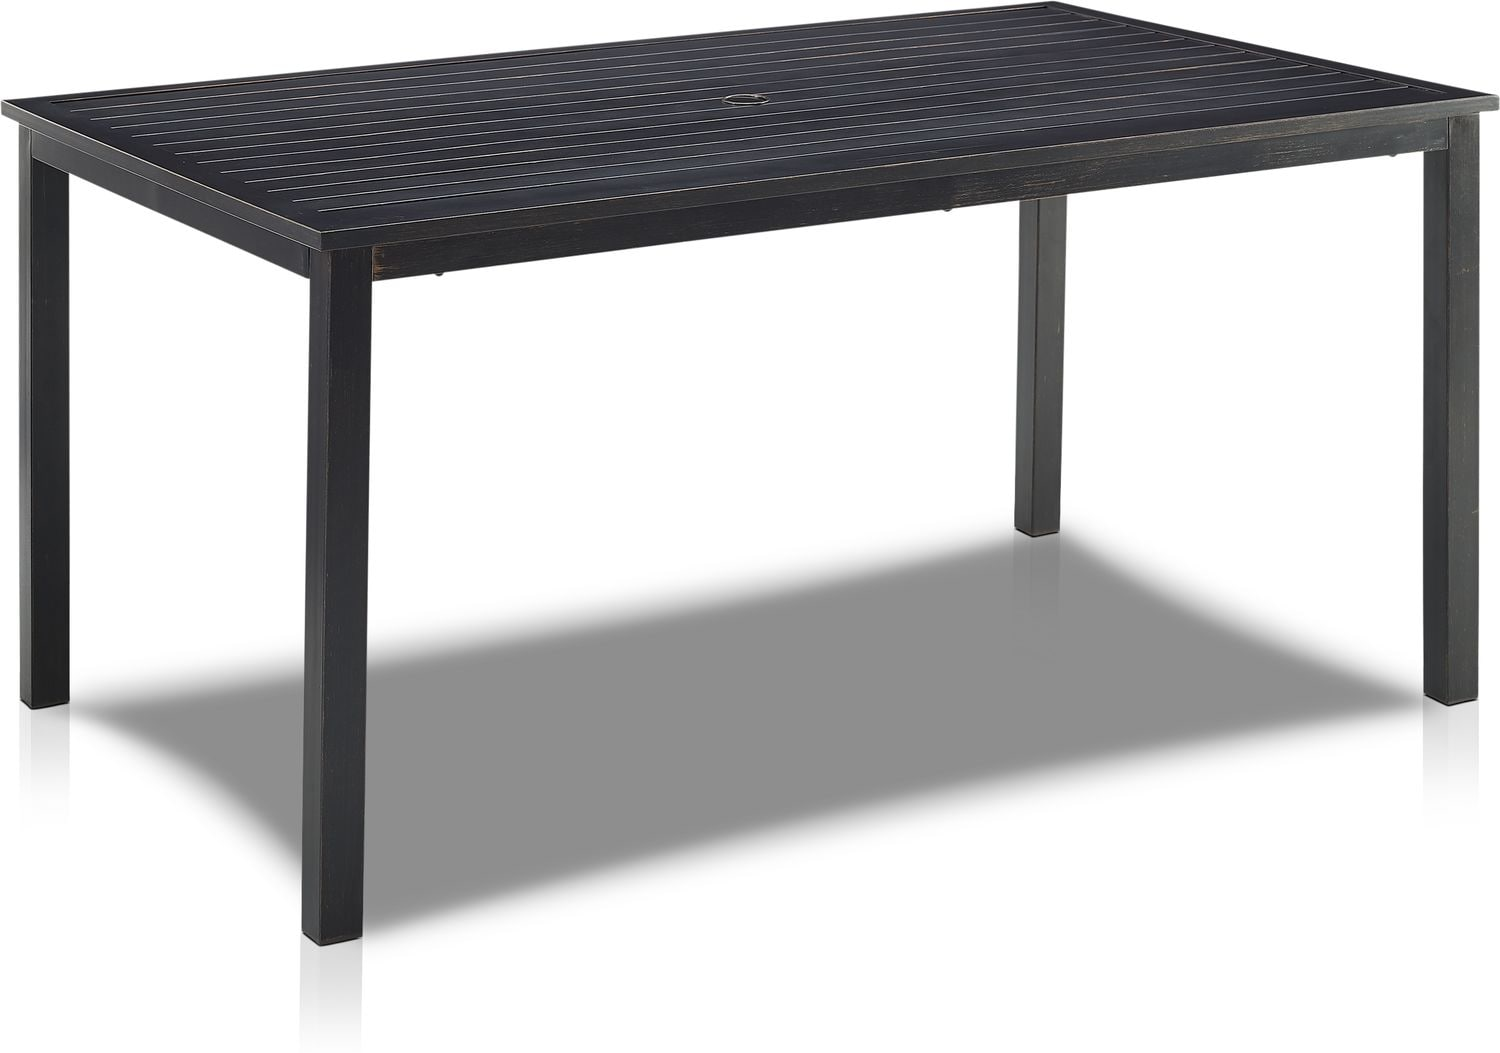 Outdoor Furniture - Clarion Outdoor Dining Table